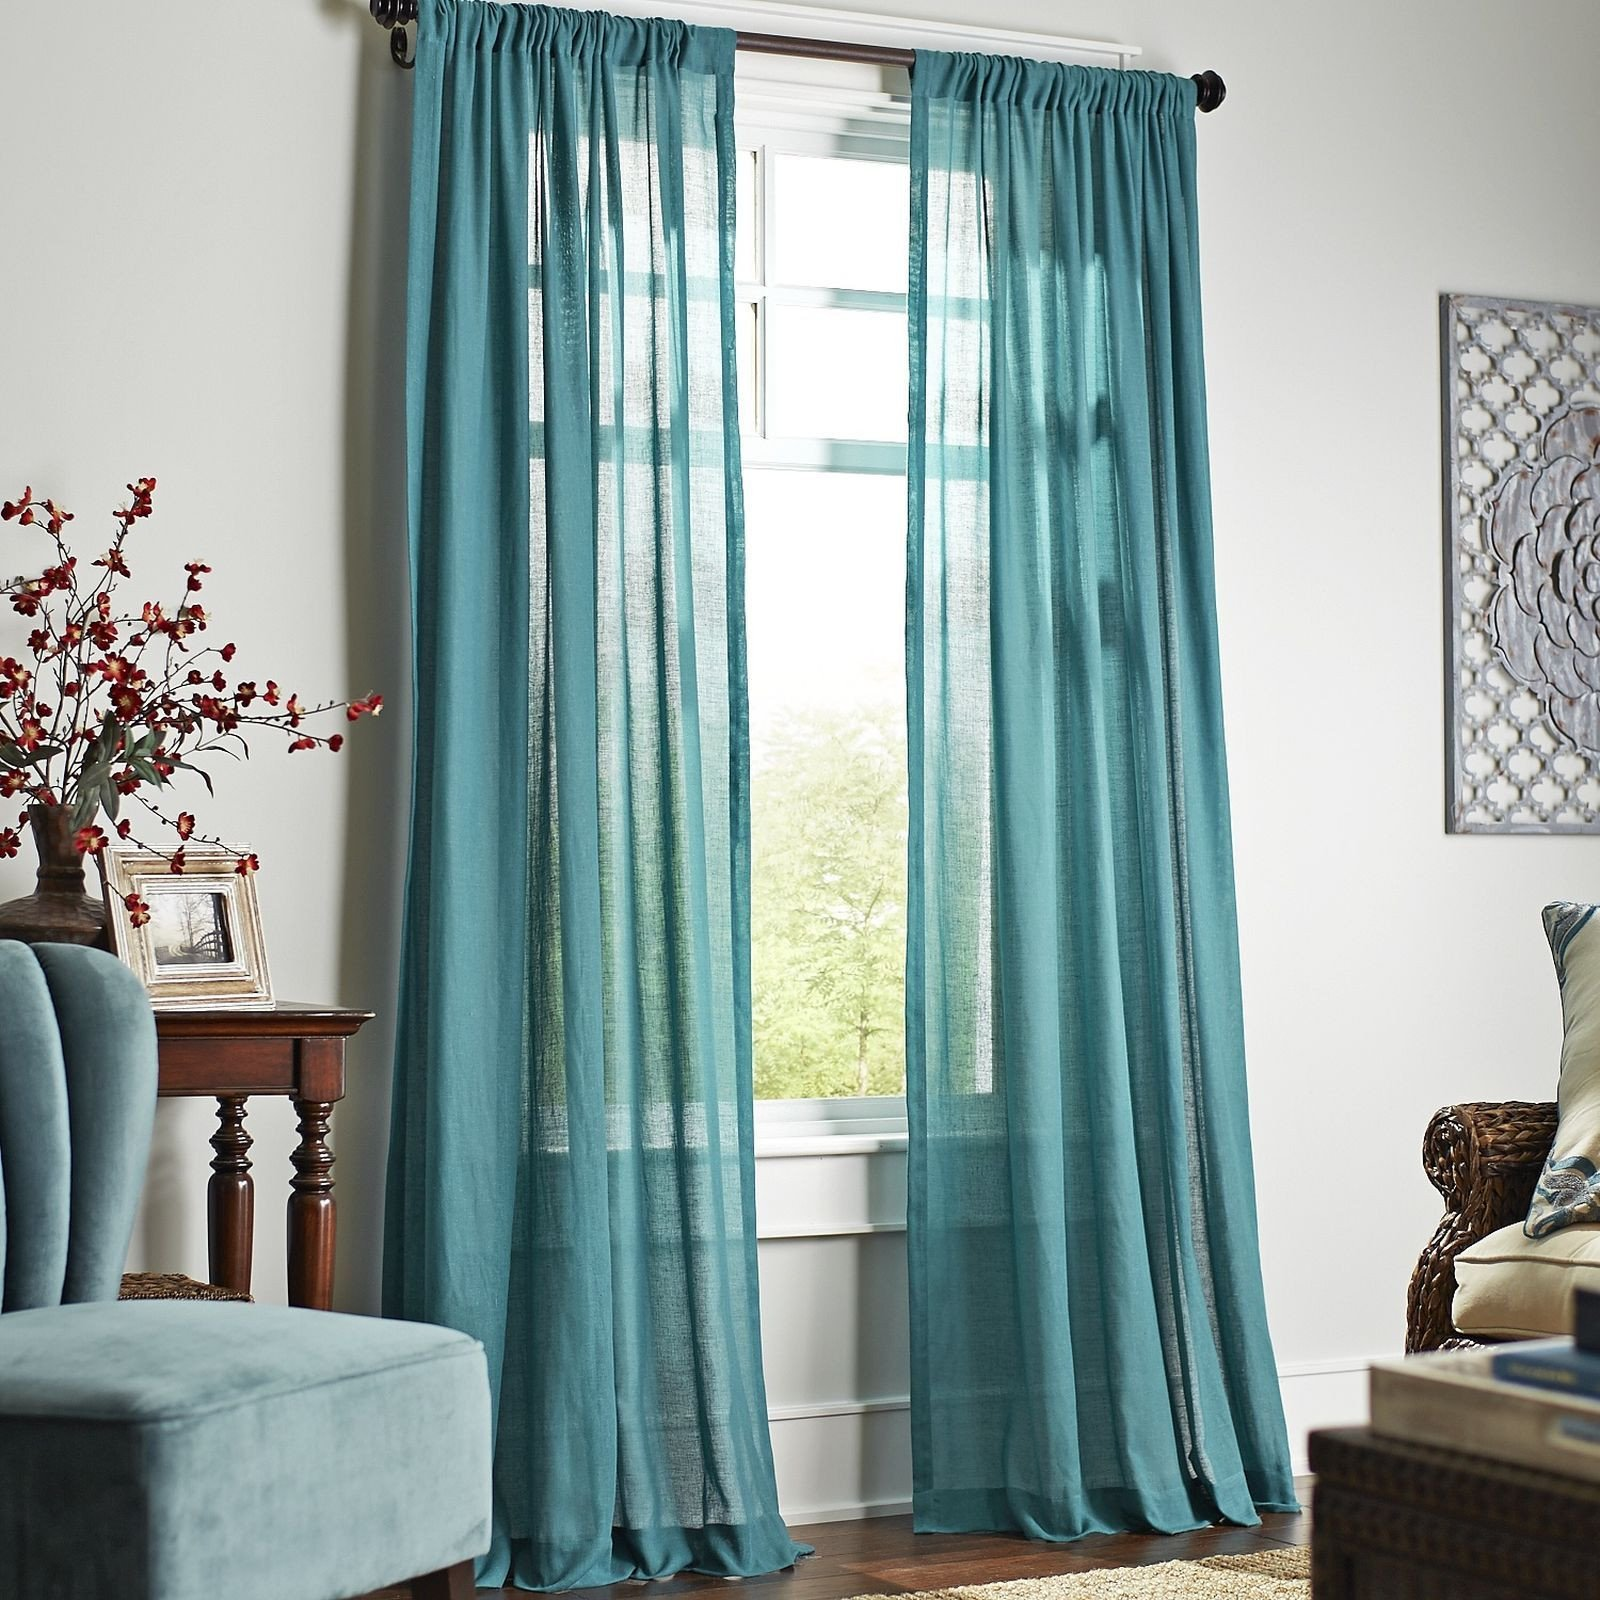 Navy Blue Curtains for Bedroom Unique Quinn Sheer Curtain Teal Pier 1 Imports